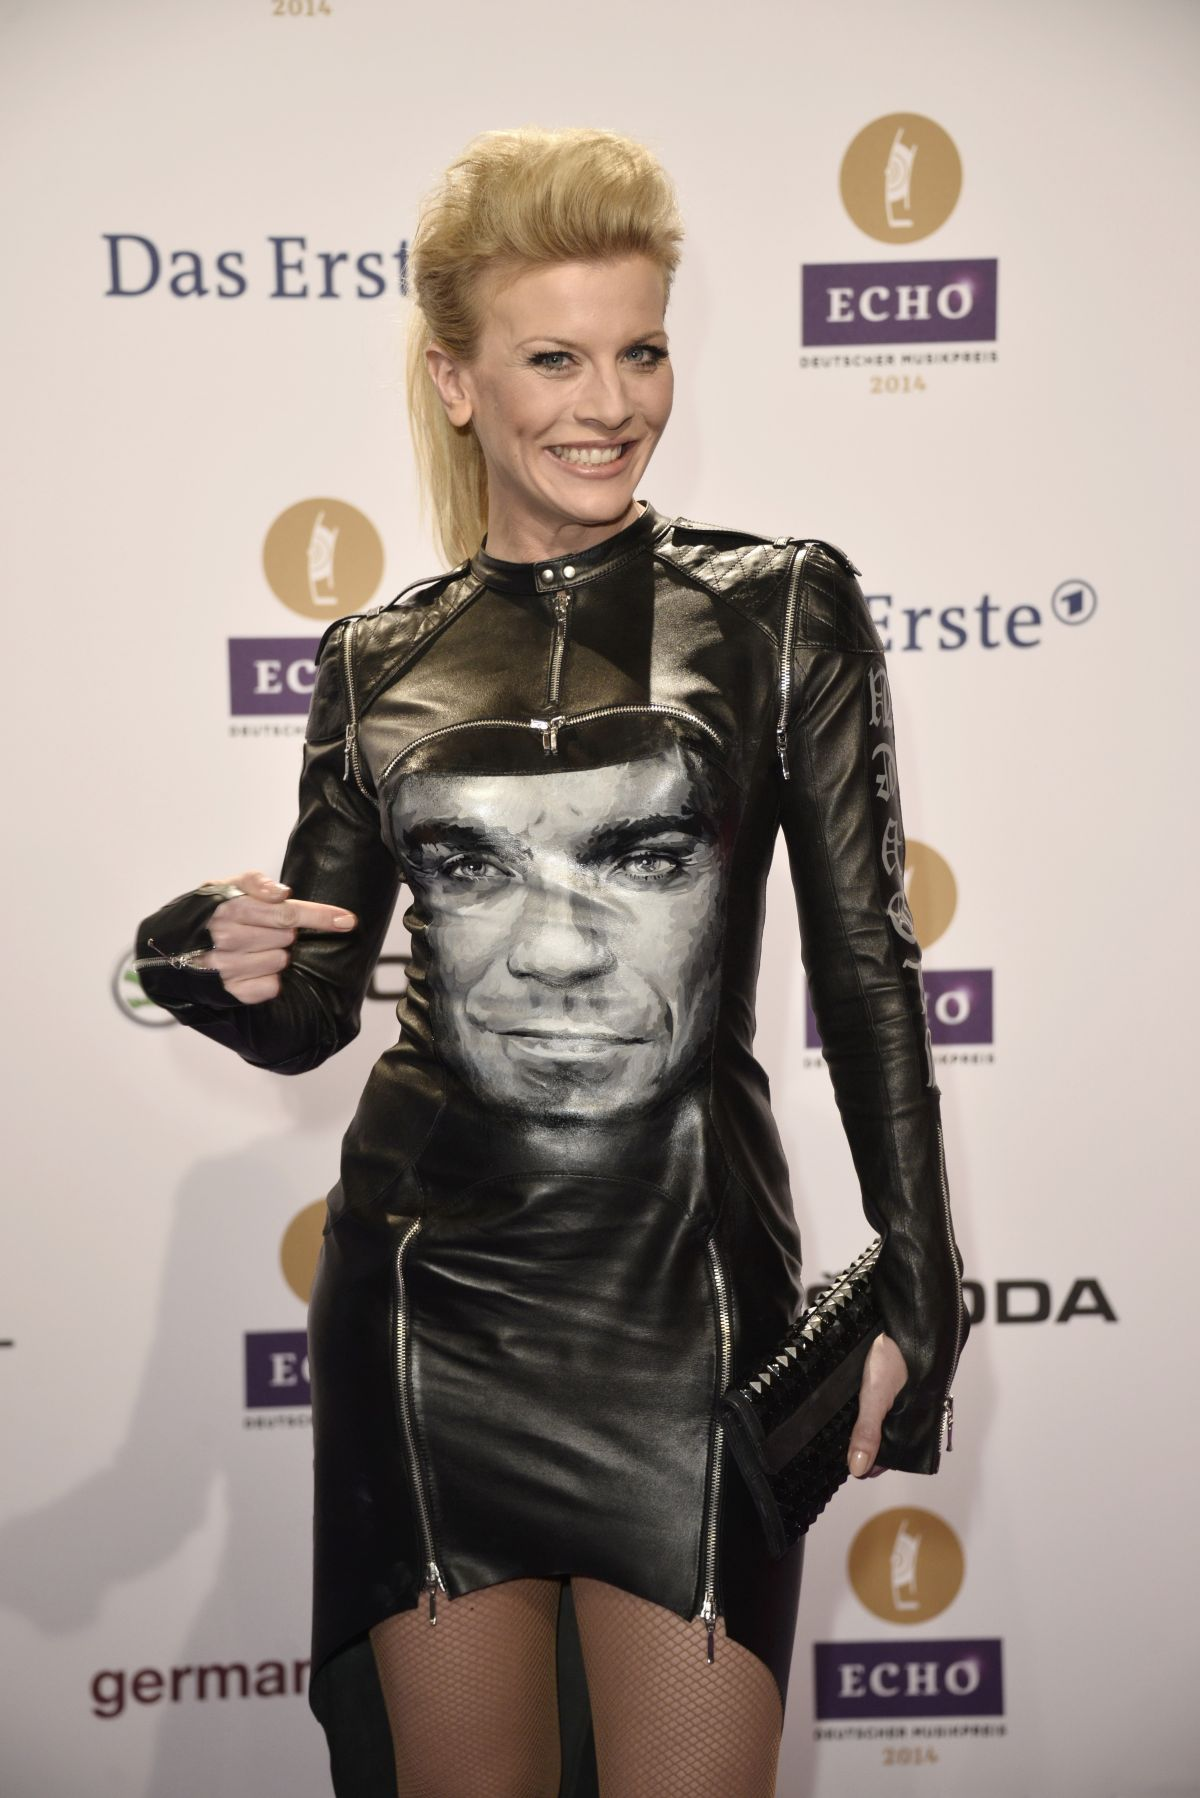 EVA HABERMANN at 2014 Echo Music Awards in Berlin